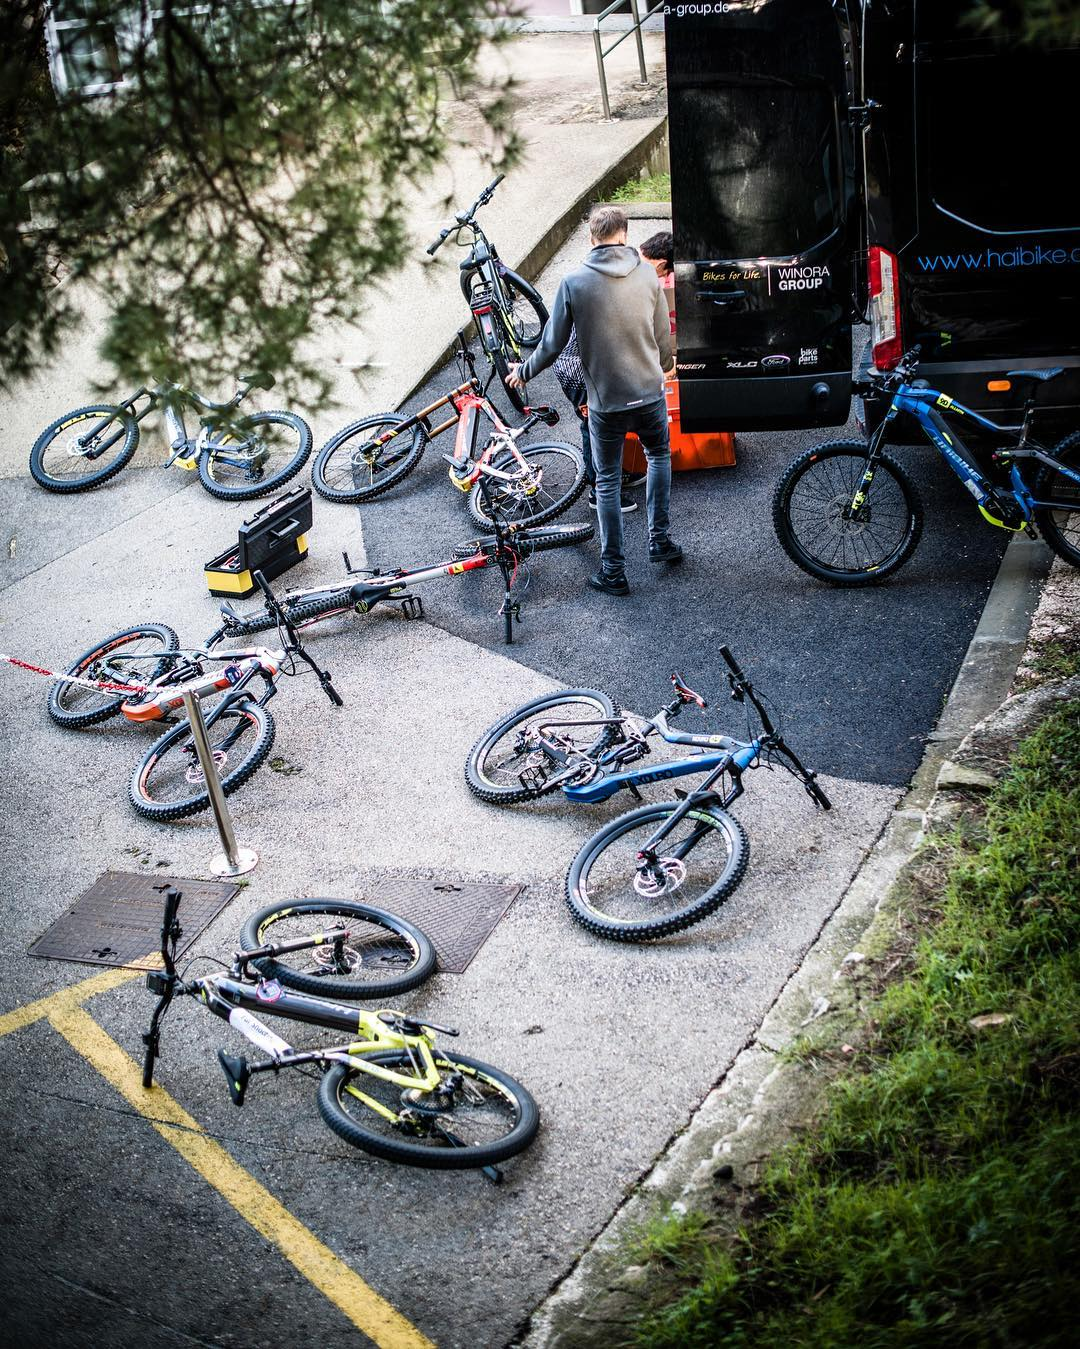 Preparation. #haibike #emtb #agencylife 📷 @lighttrapper_photography